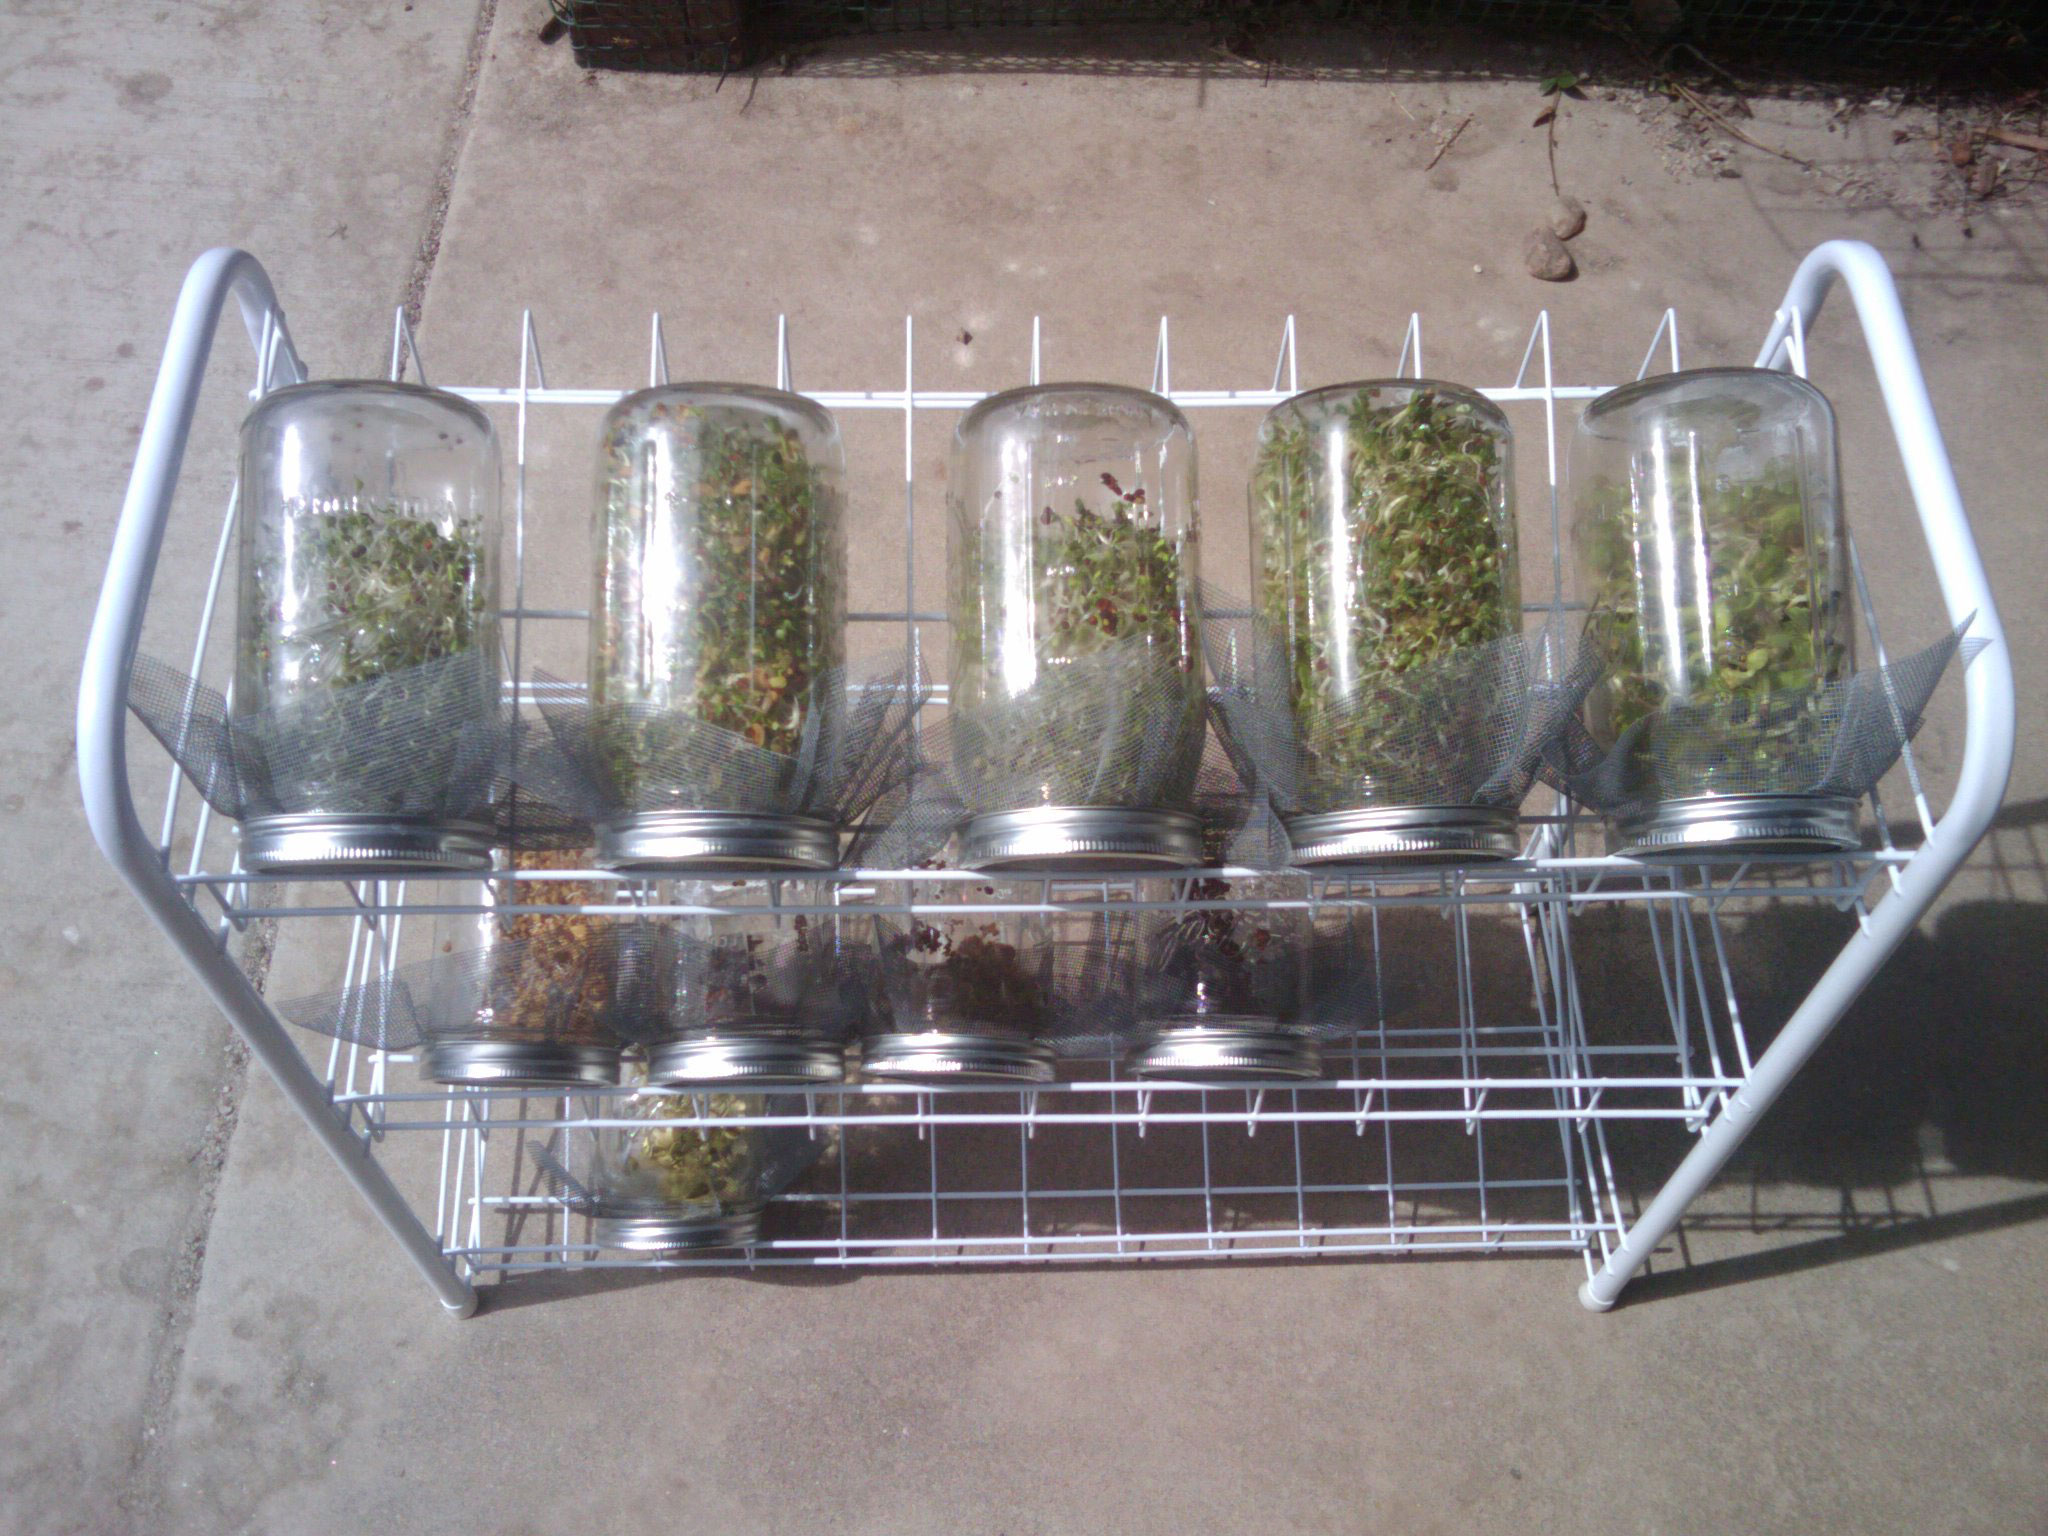 Shoe rack to hold the sprouting jars